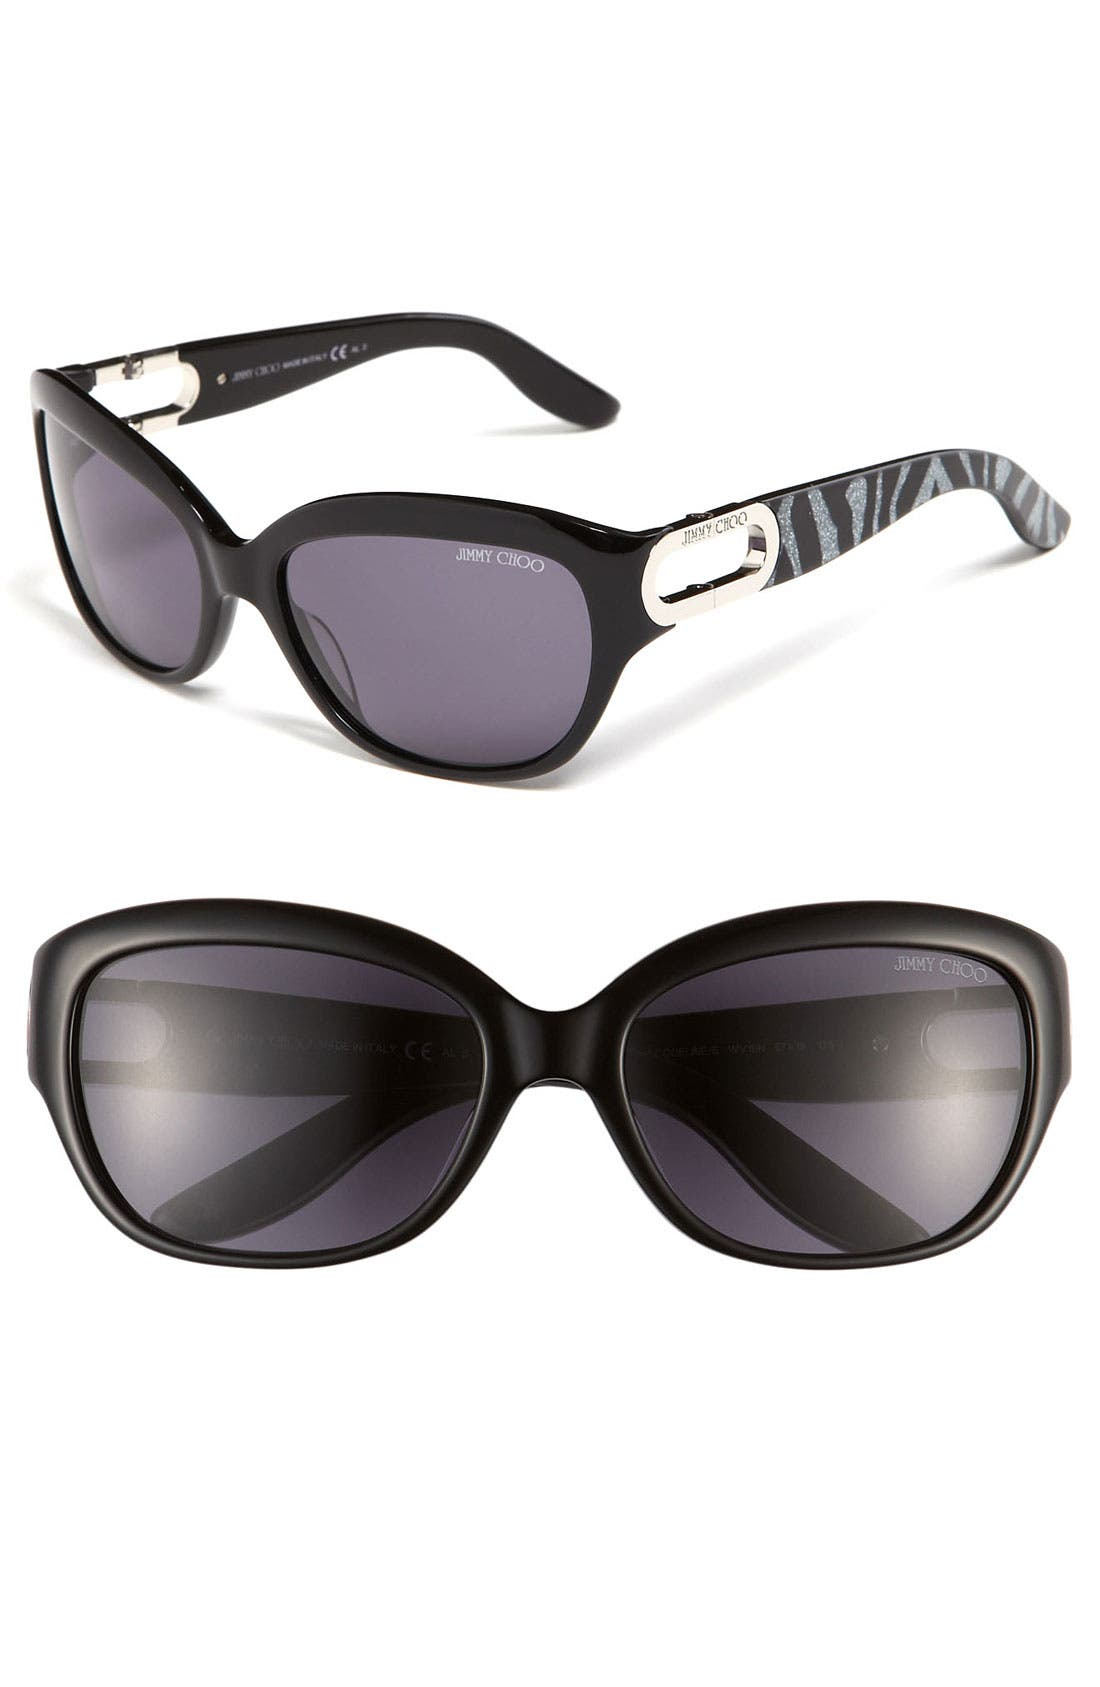 Alternate Image 1 Selected - Jimmy Choo 'Jaqueline' 57mm Cat's Eye Sunglasses